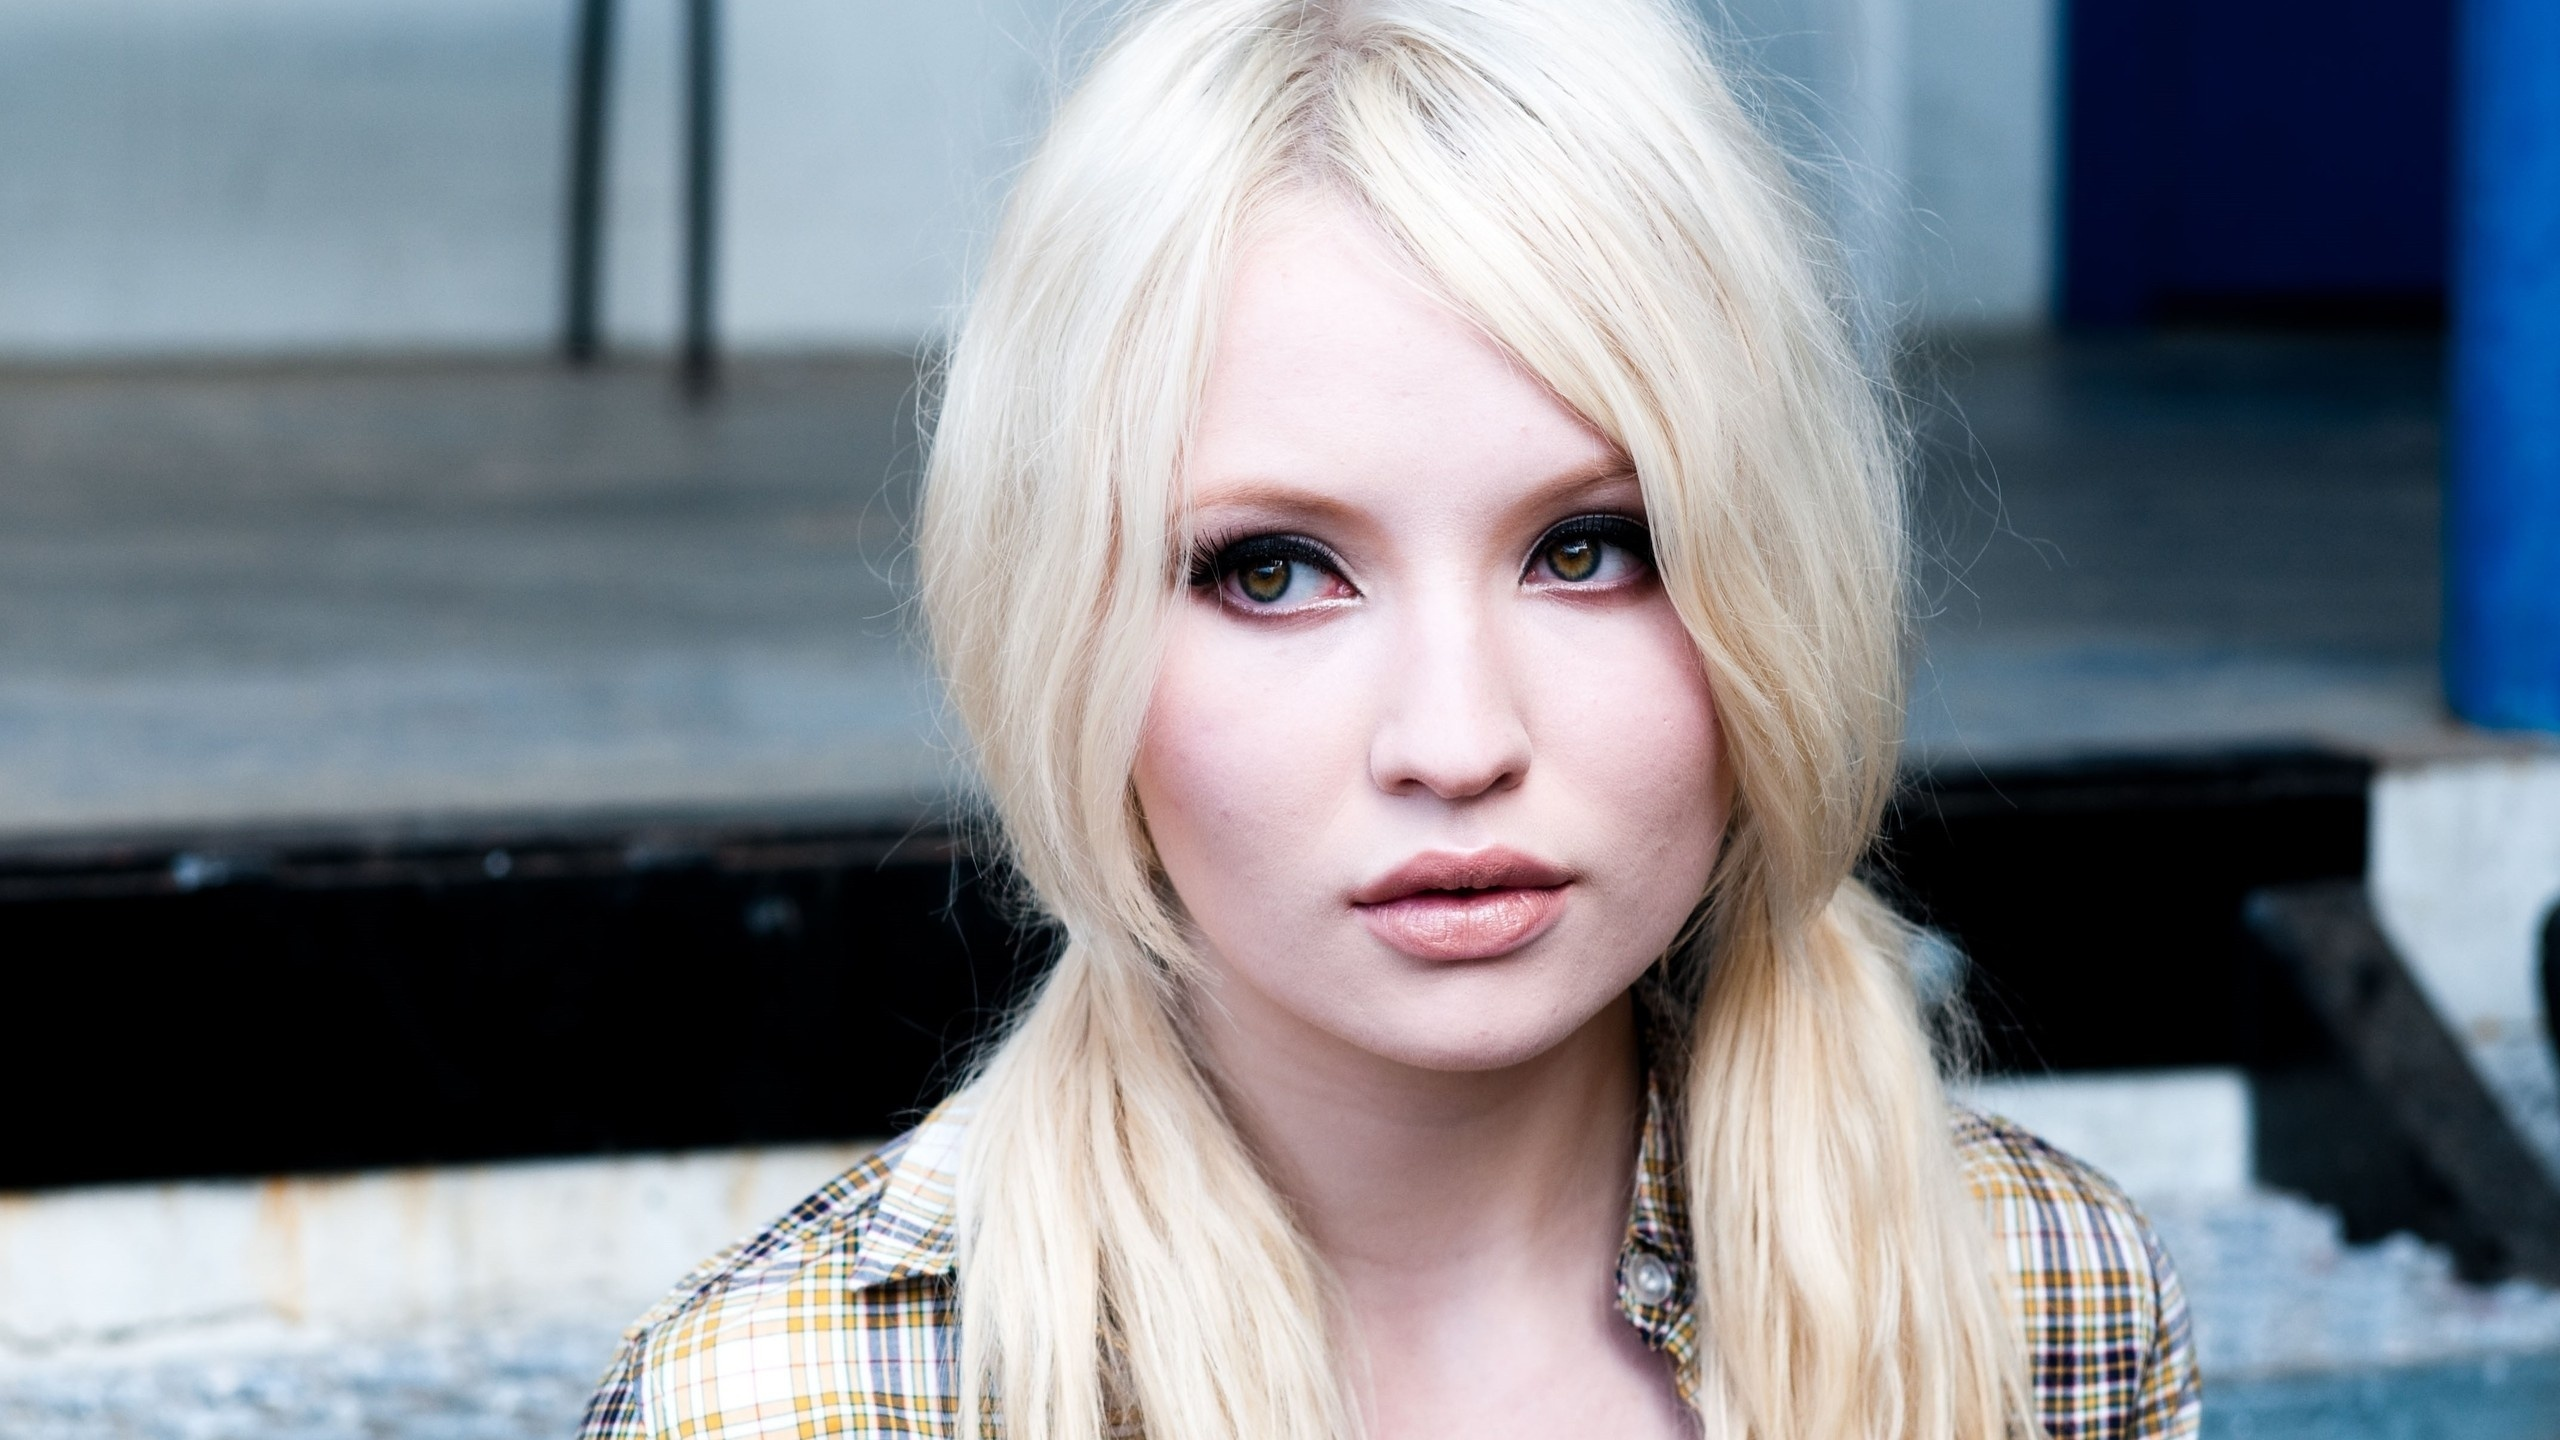 Emily Browning Backgrounds on Wallpapers Vista